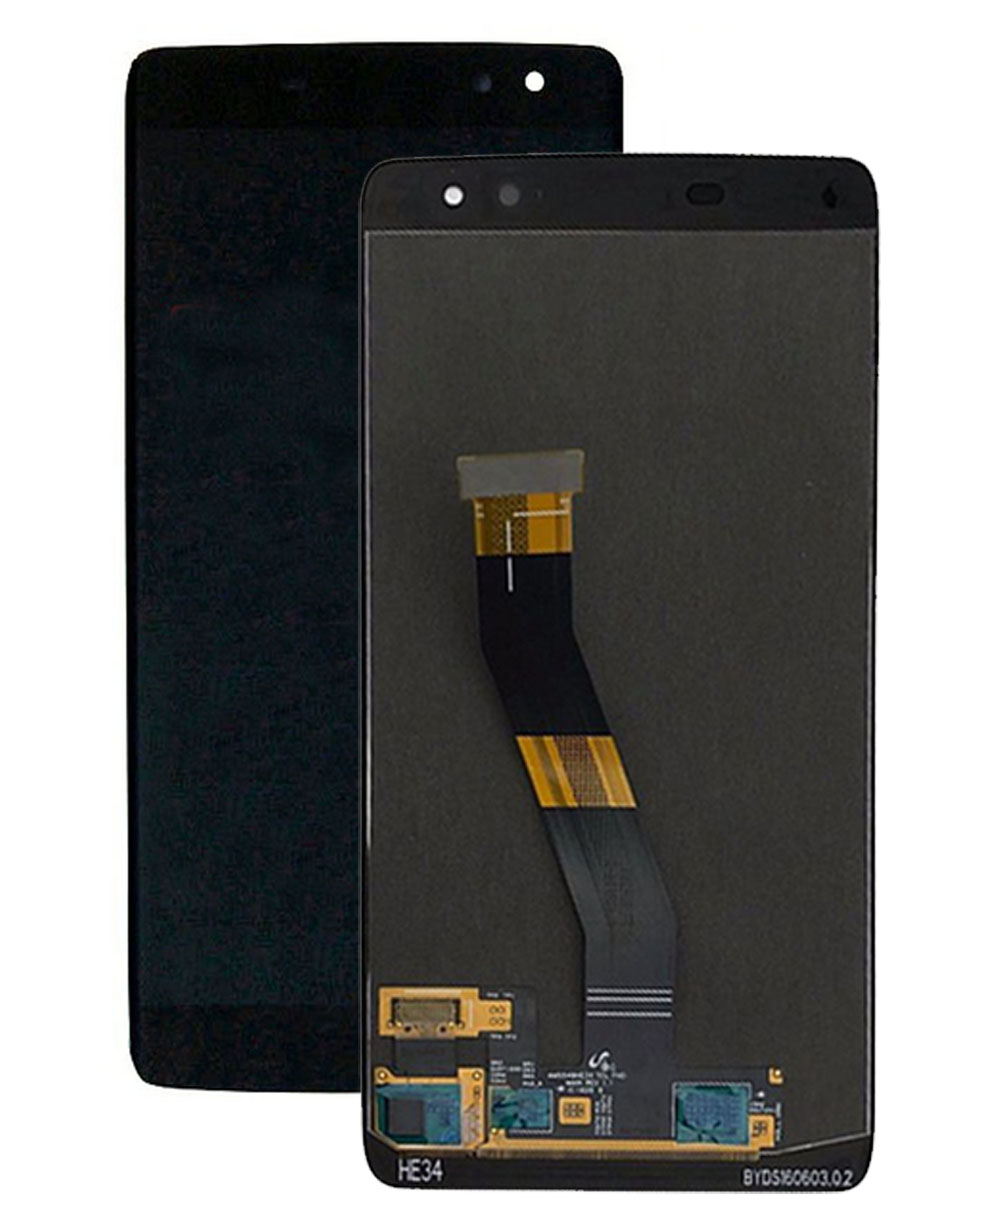 STARDE Replacement LCD For BlackBerry DTEK60 LCD Display Touch Screen Digitizer Sense Assembly Frame 5.5STARDE Replacement LCD For BlackBerry DTEK60 LCD Display Touch Screen Digitizer Sense Assembly Frame 5.5